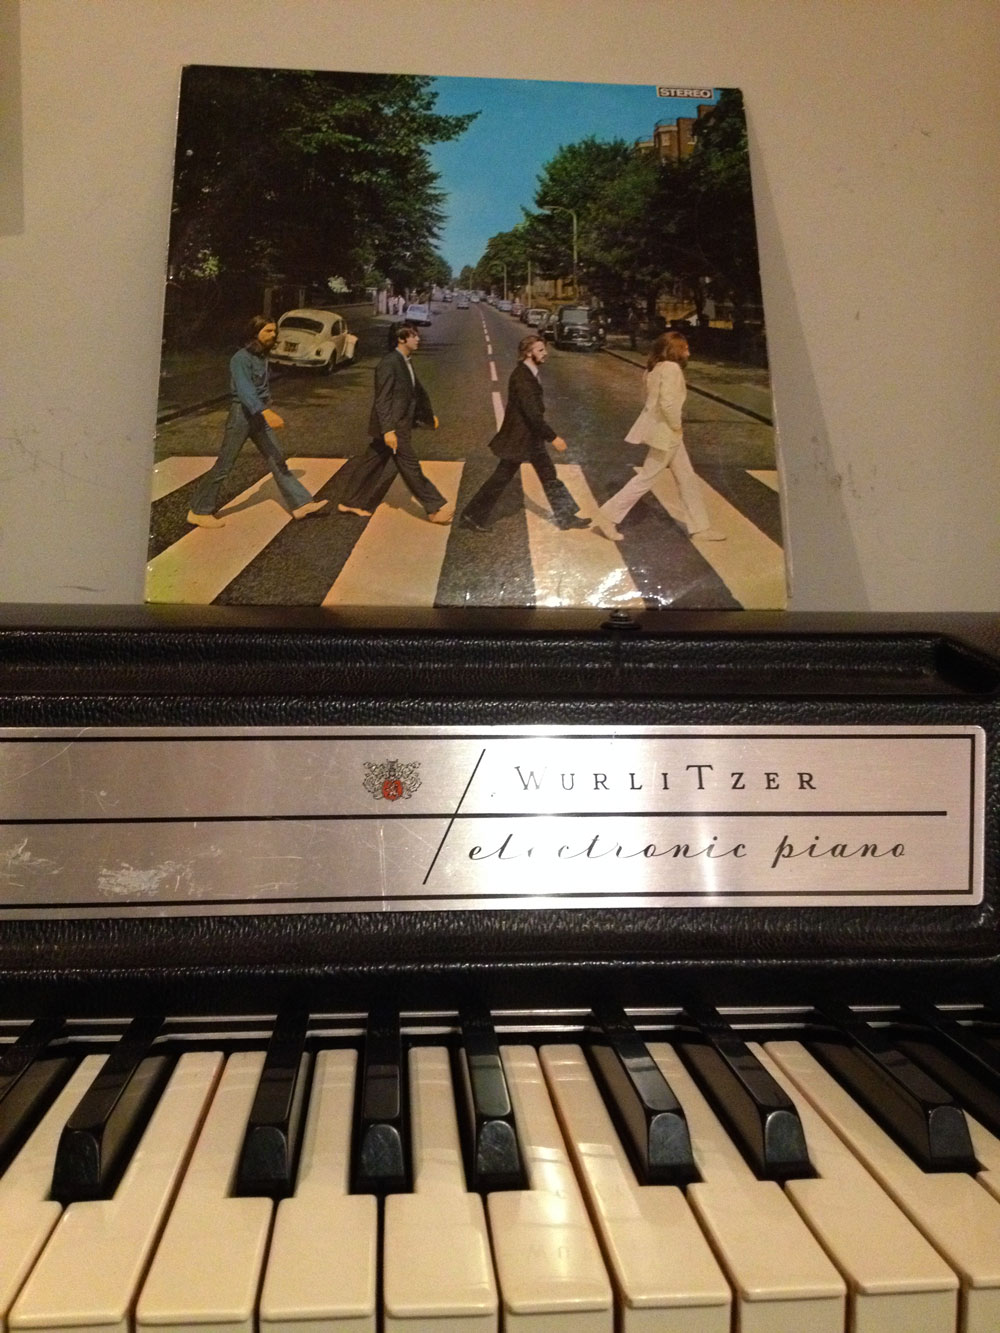 Abbey Road Vinyl with Wurlitzer A200